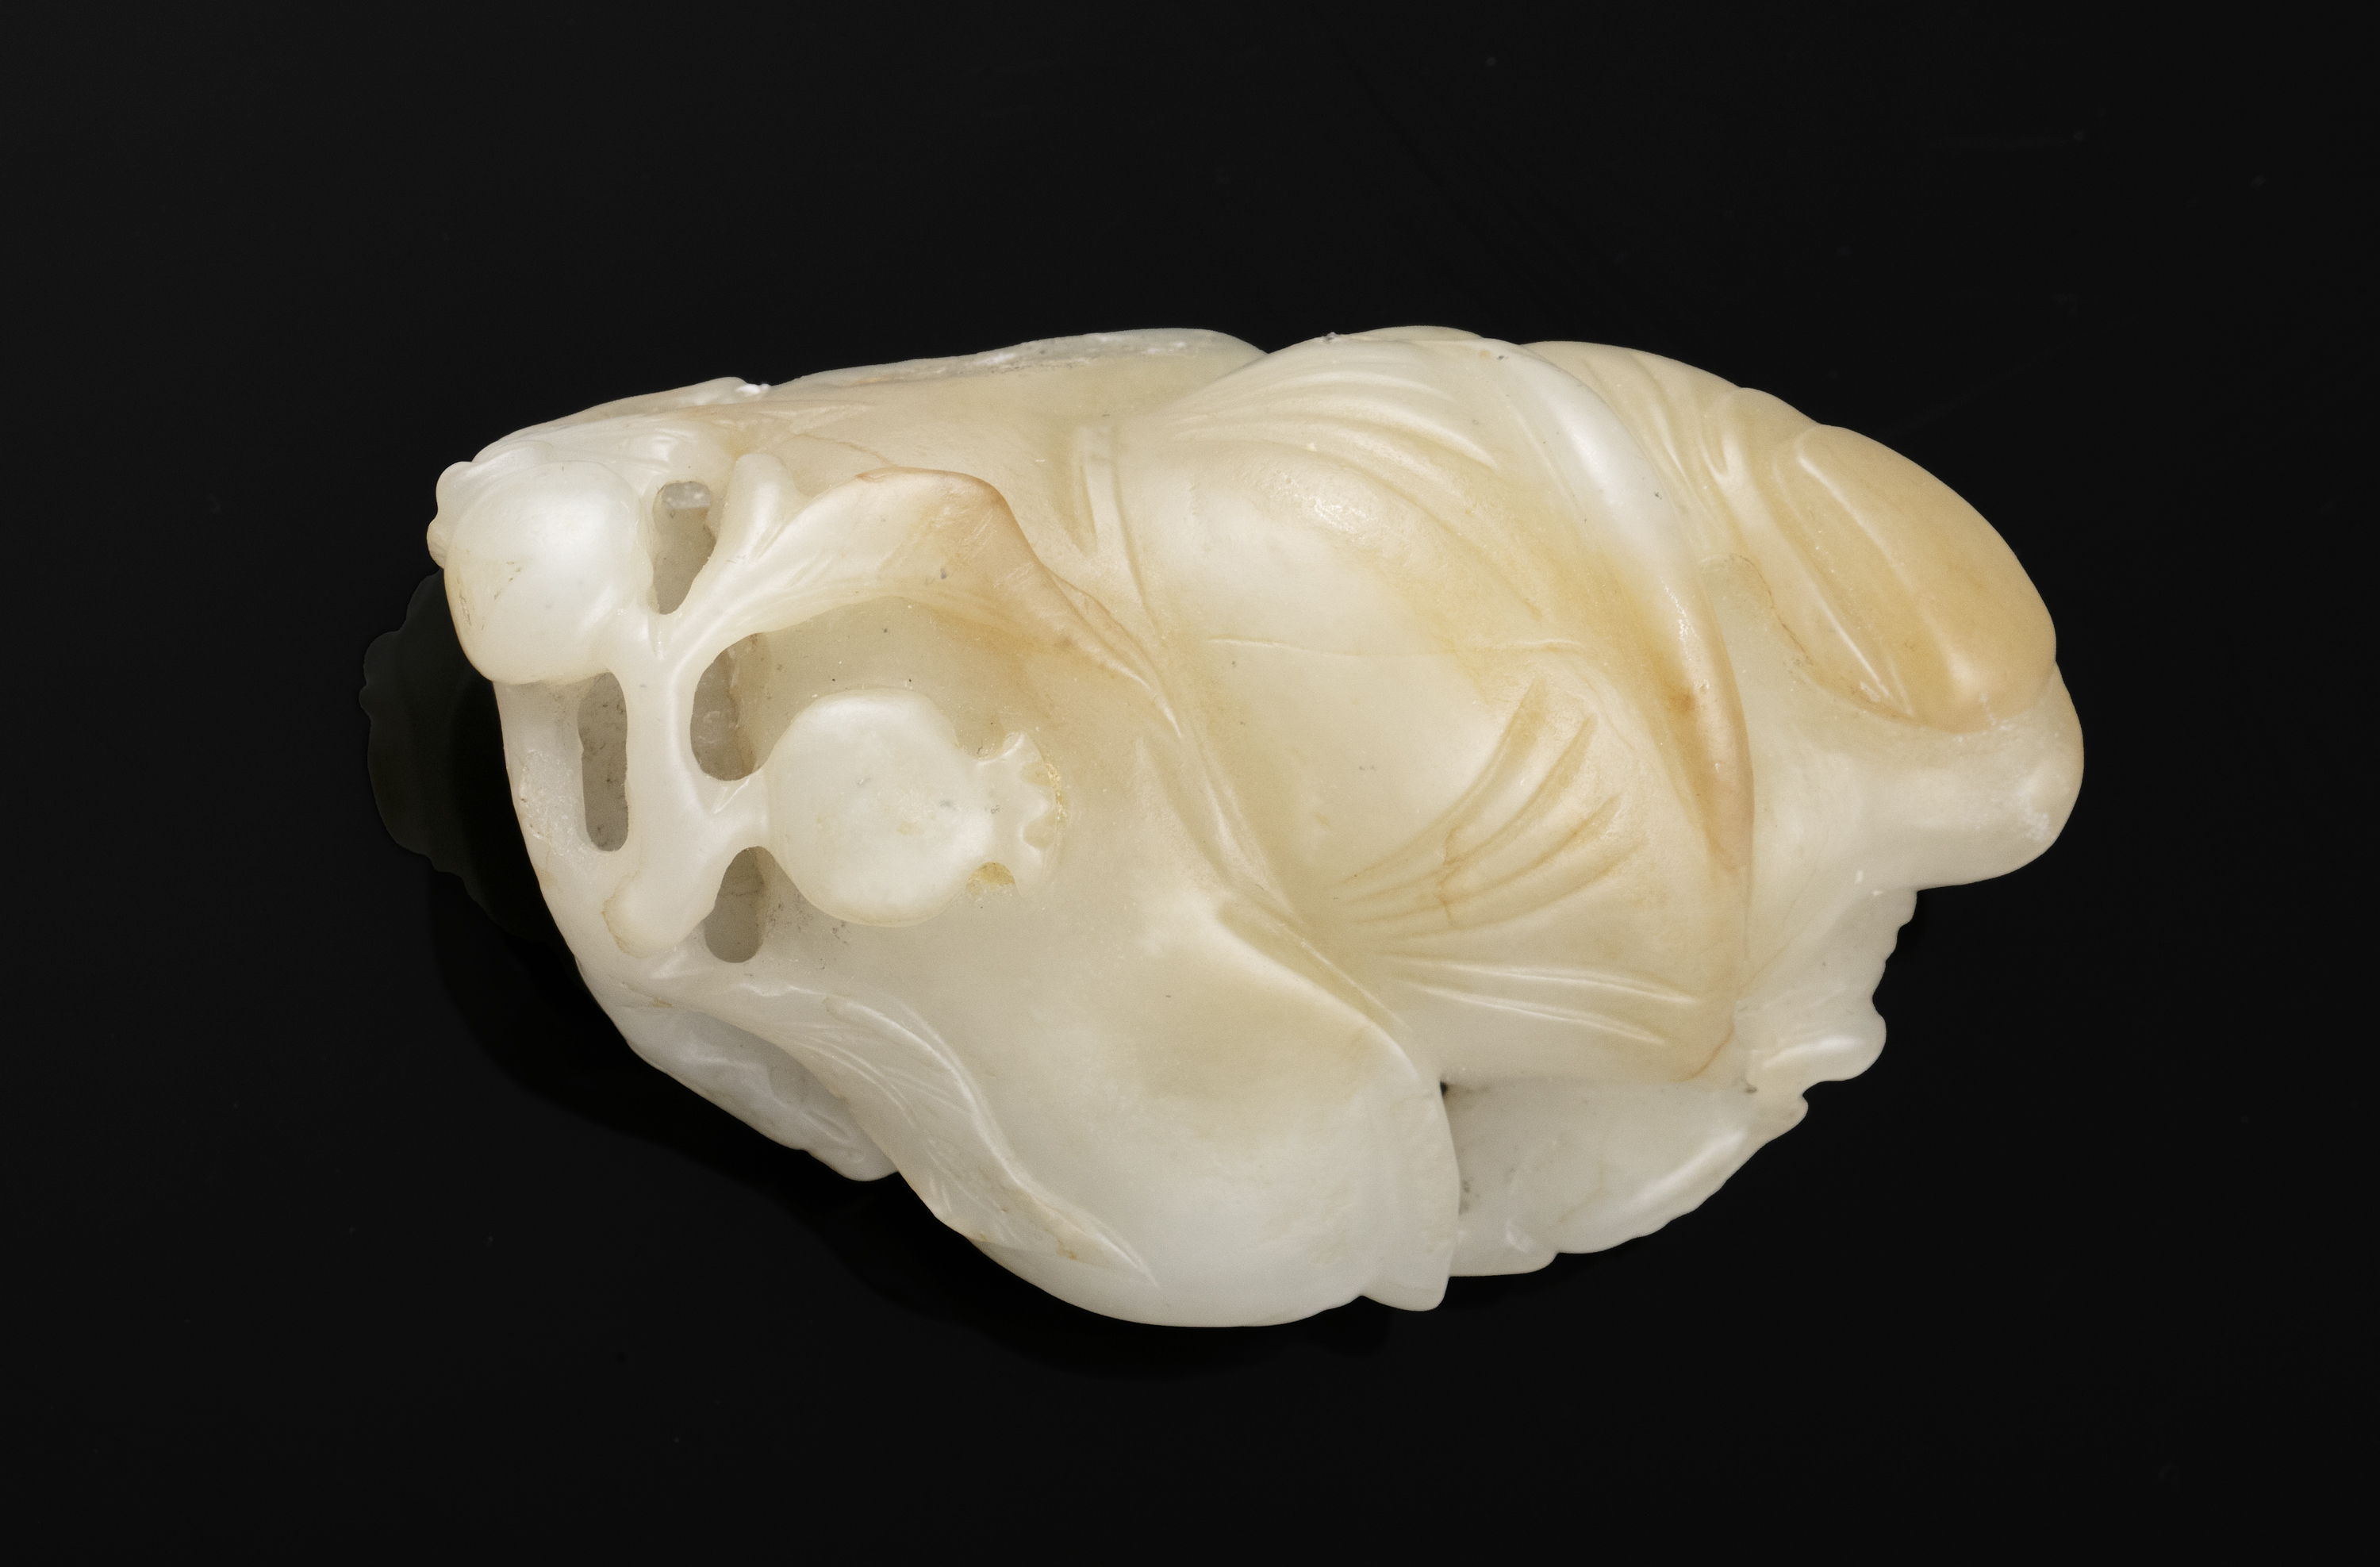 A WHITE AND RUSSETS JADE CARVING OF A HOHO / HEHE / ERXIAN / 和合二仙 China The boy is depicted grasping - Image 10 of 20